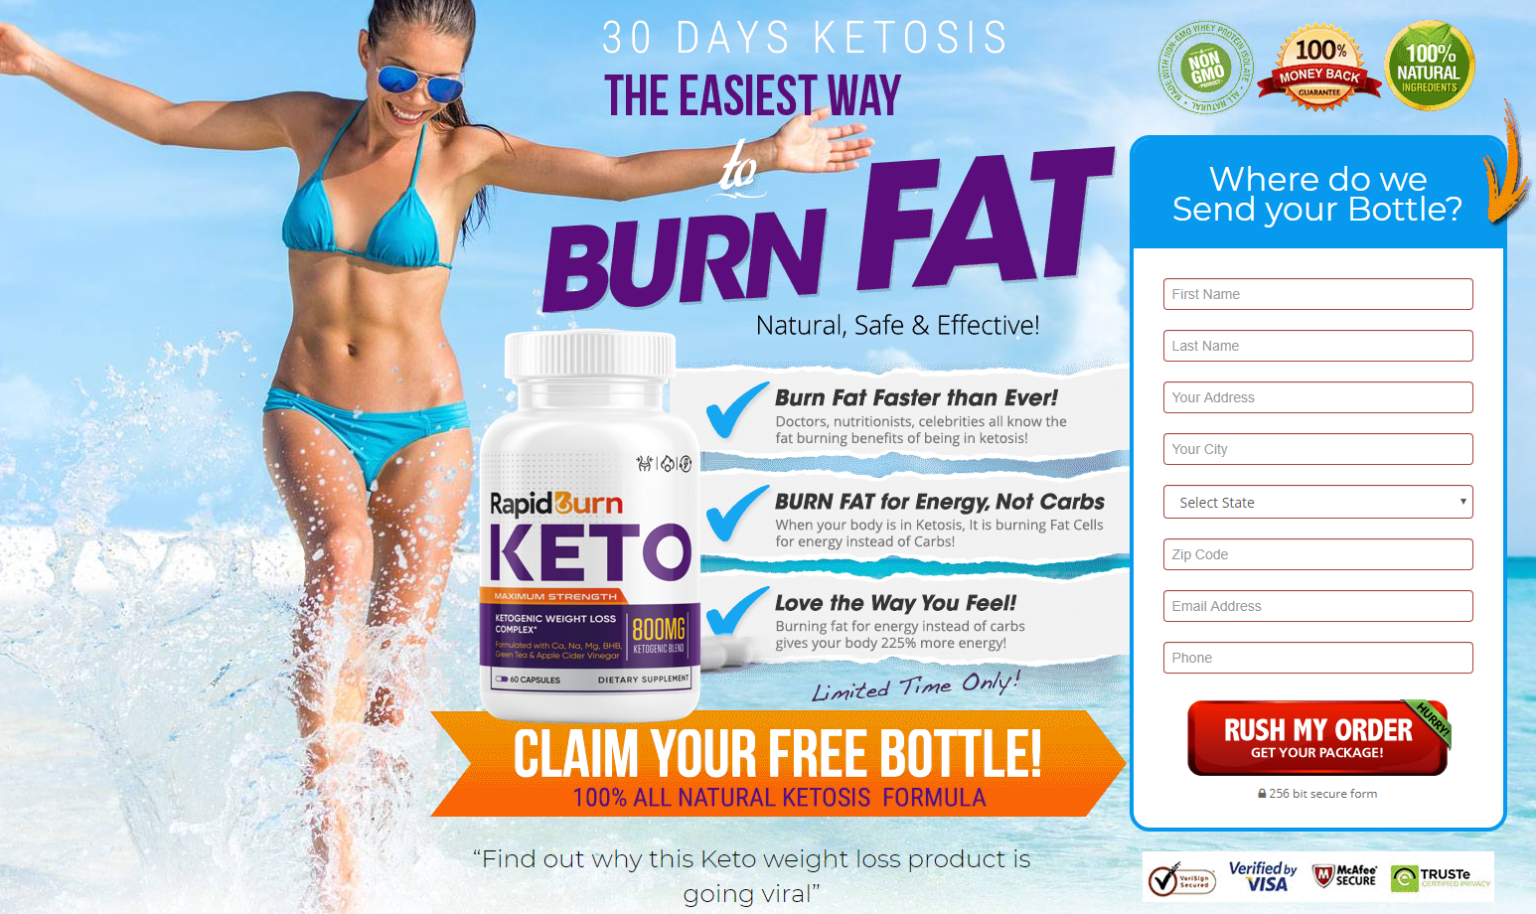 Rapid Burn Keto Buy